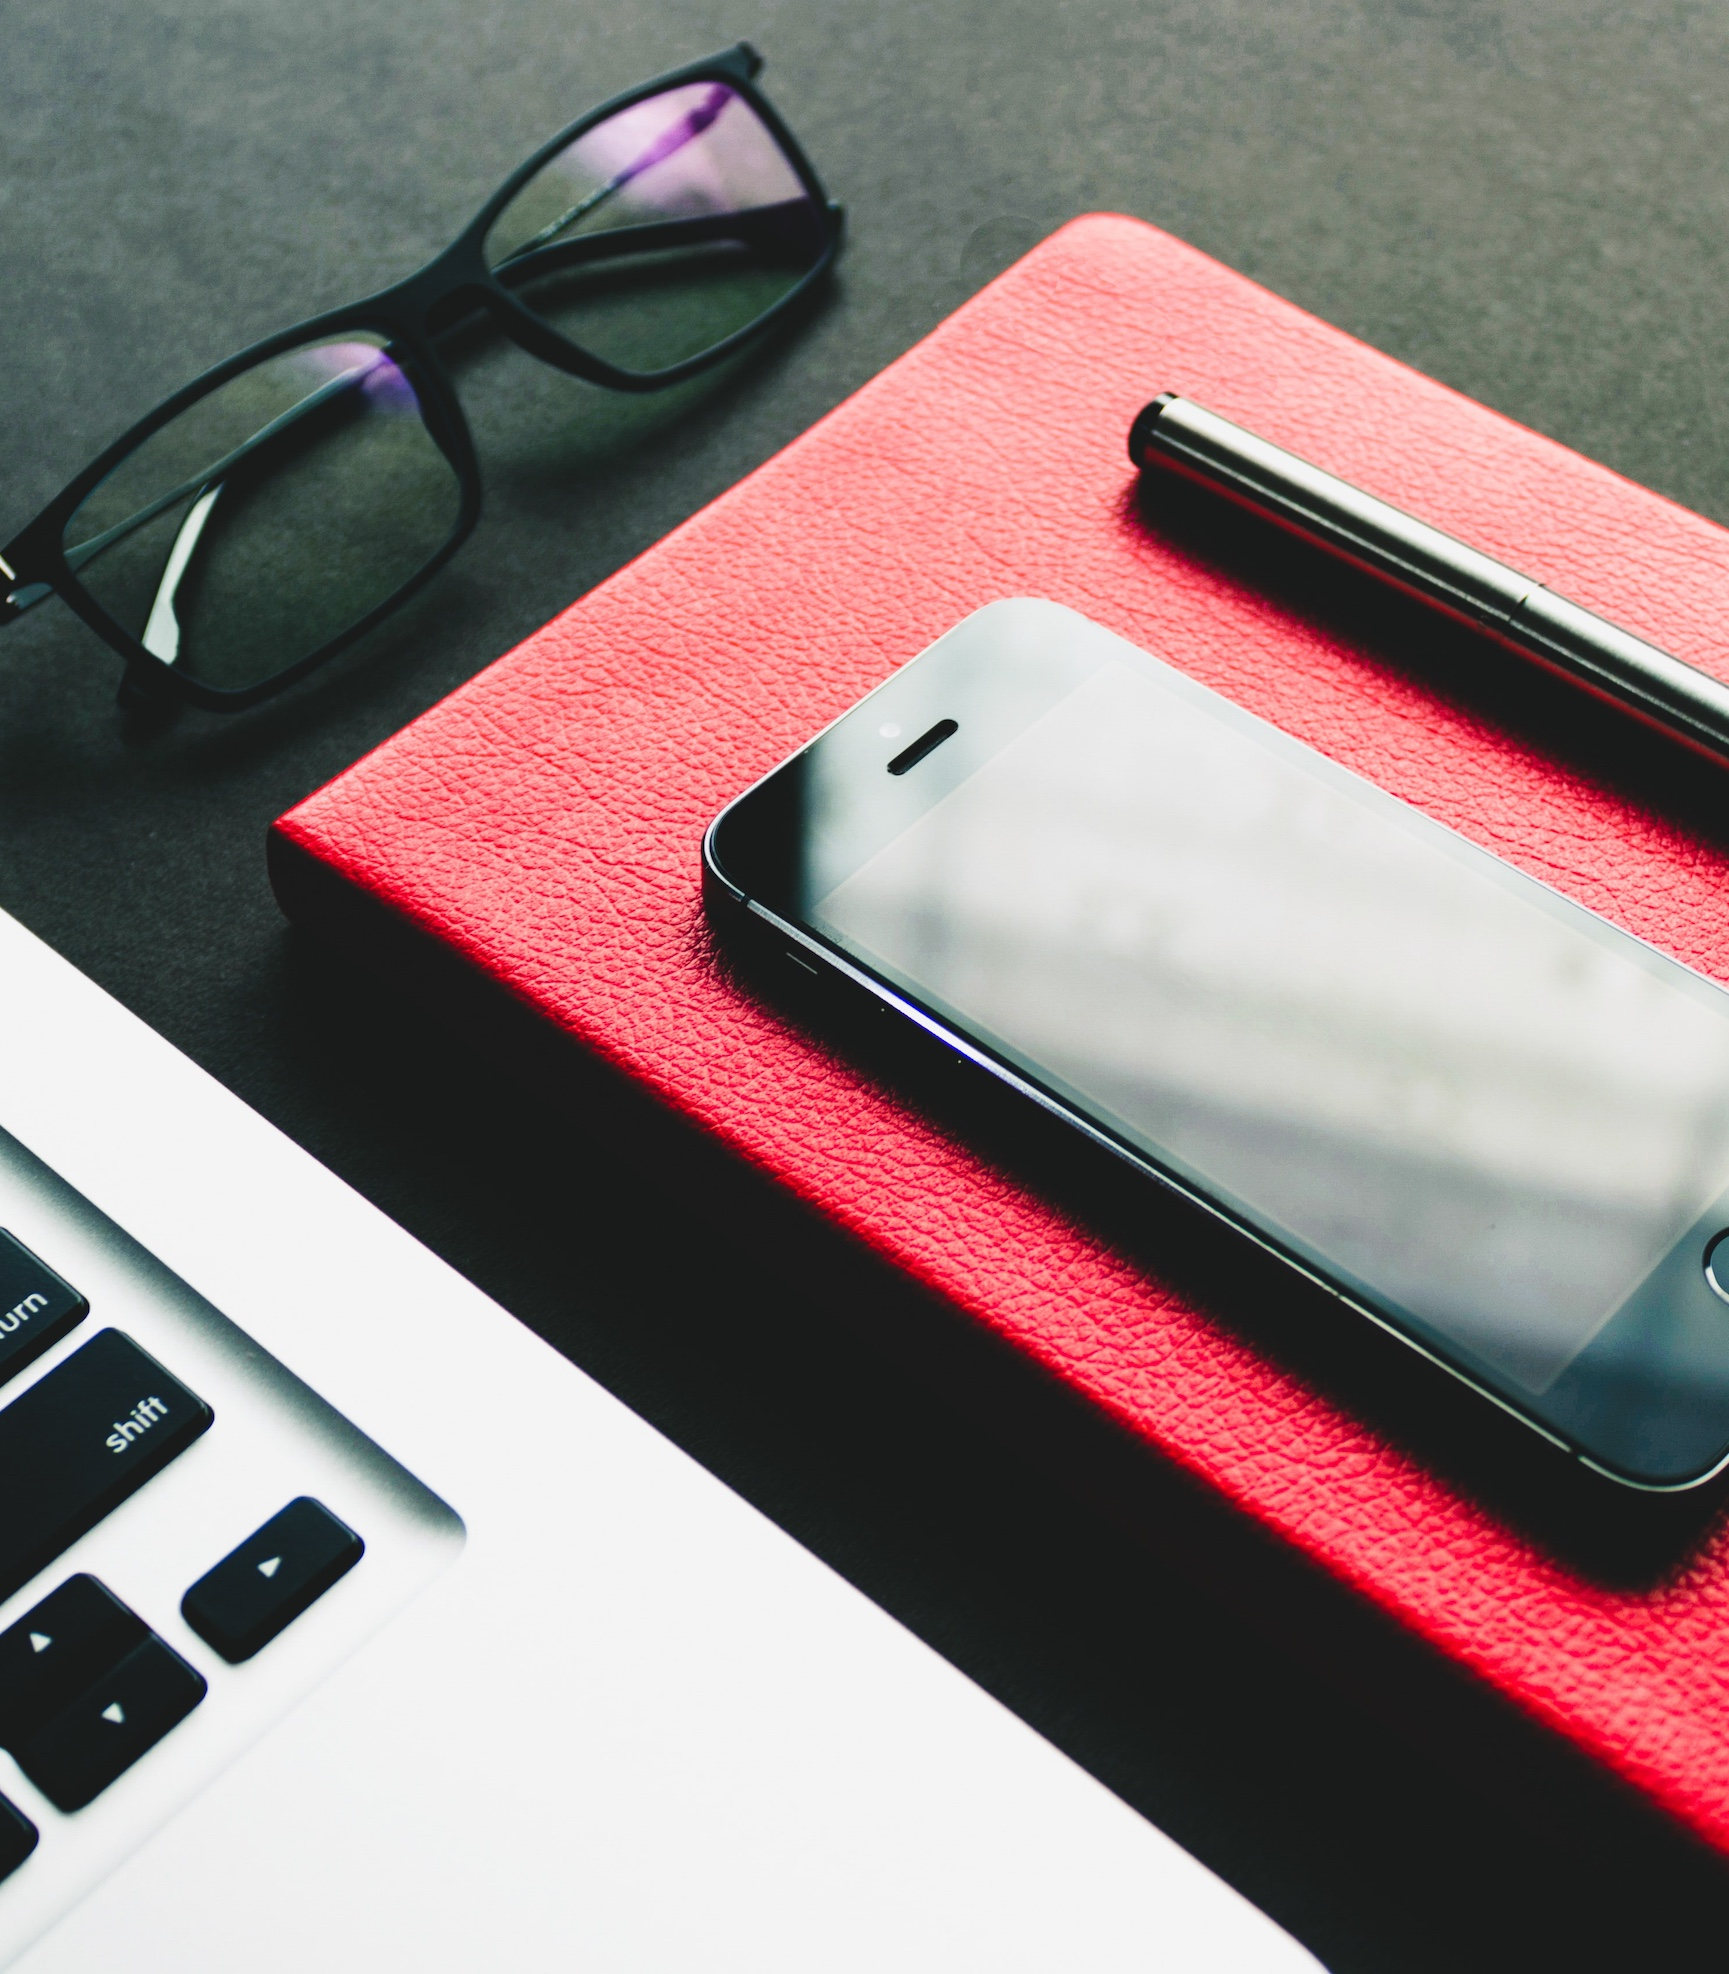 phone and pen on top of notebook, sitting next to an open laptop and glasses